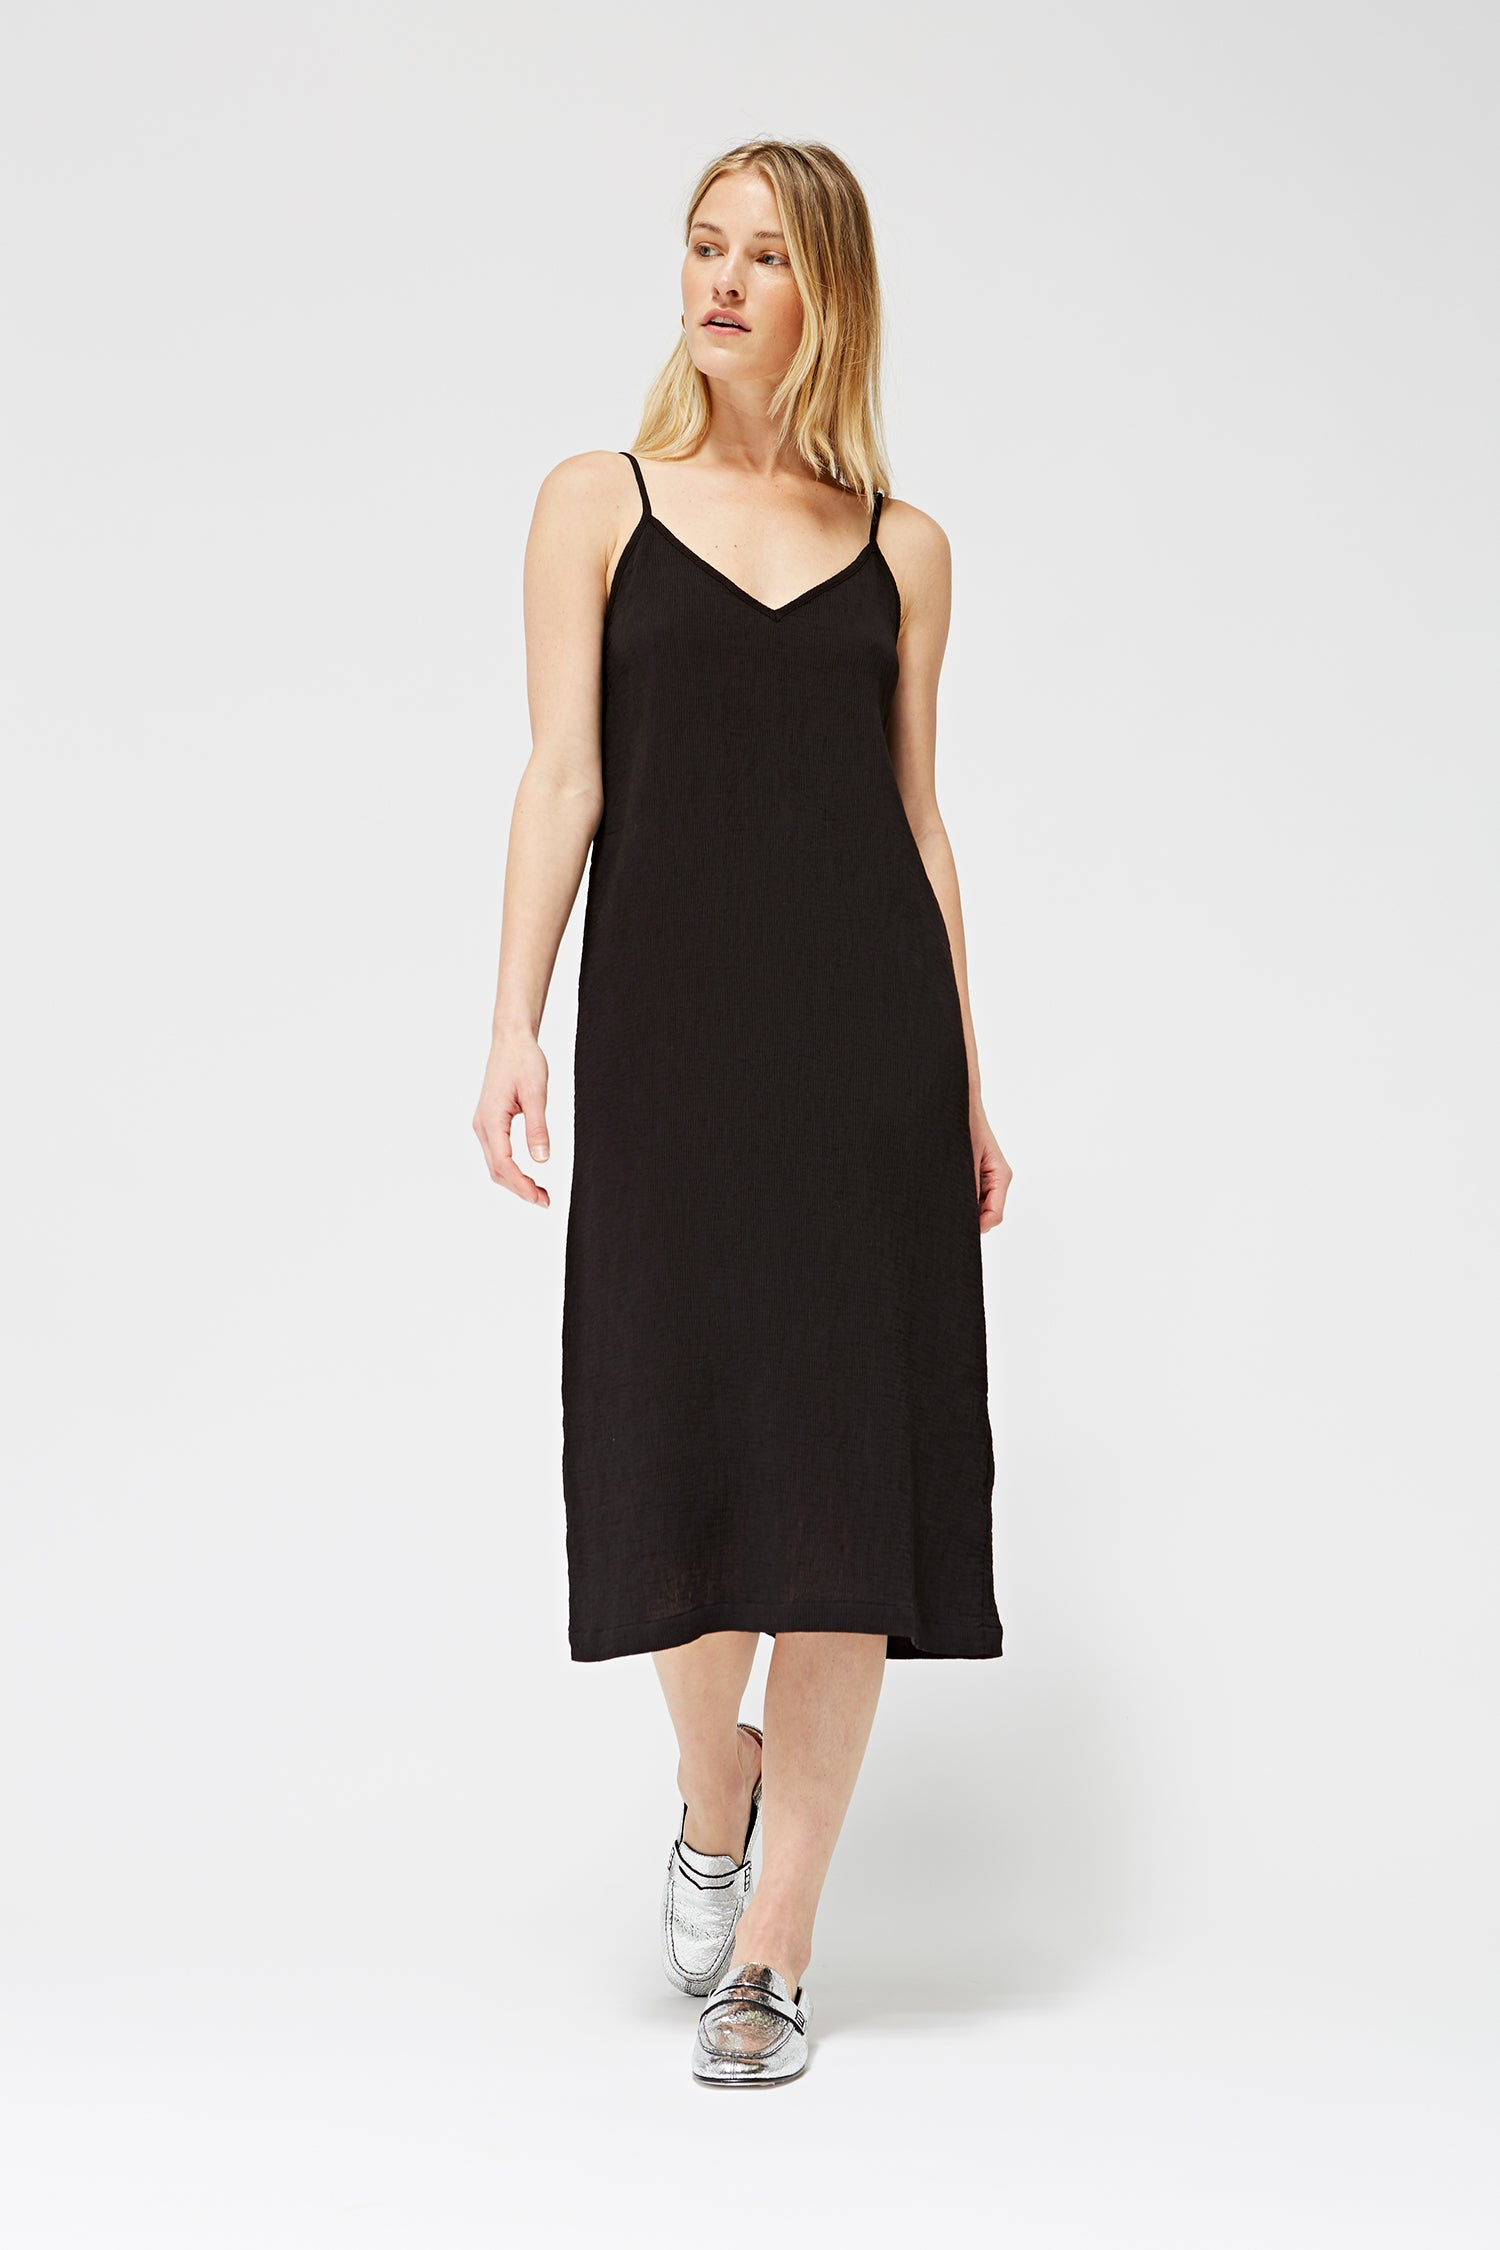 8b015e4a701a Spice Slip Dress - LACAUSA Clothing